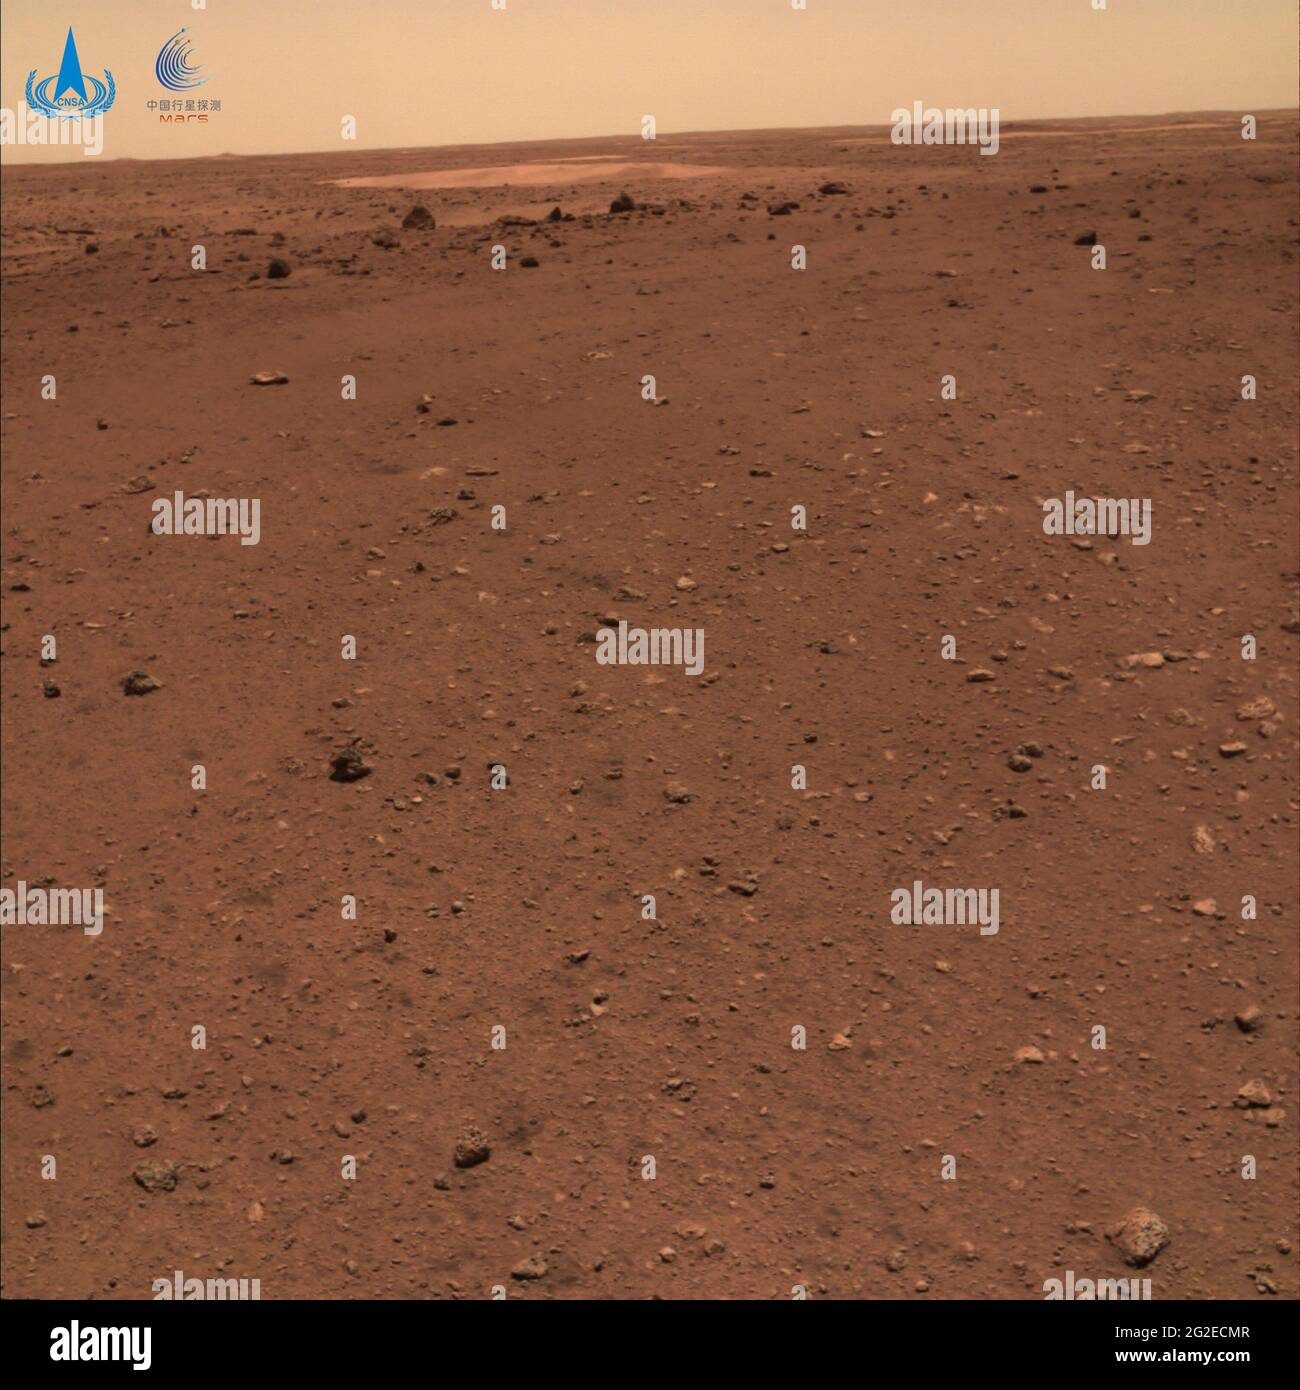 (210611) -- BEIJING, June 11, 2021 (Xinhua) -- Photo released on June 11, 2021 by the China National Space Administration (CNSA) shows the Martian landscape. The China National Space Administration Friday released new images taken by the country's first Mars rover Zhurong, showing national flag on the red planet. The images were unveiled at a ceremony in Beijing, signifying a complete success of China's first mars exploration mission. The images include the landing site panorama, Martian landscape and a selfie of the rover with the landing platform. (CNSA/Handout via Xinhua) Stock Photo